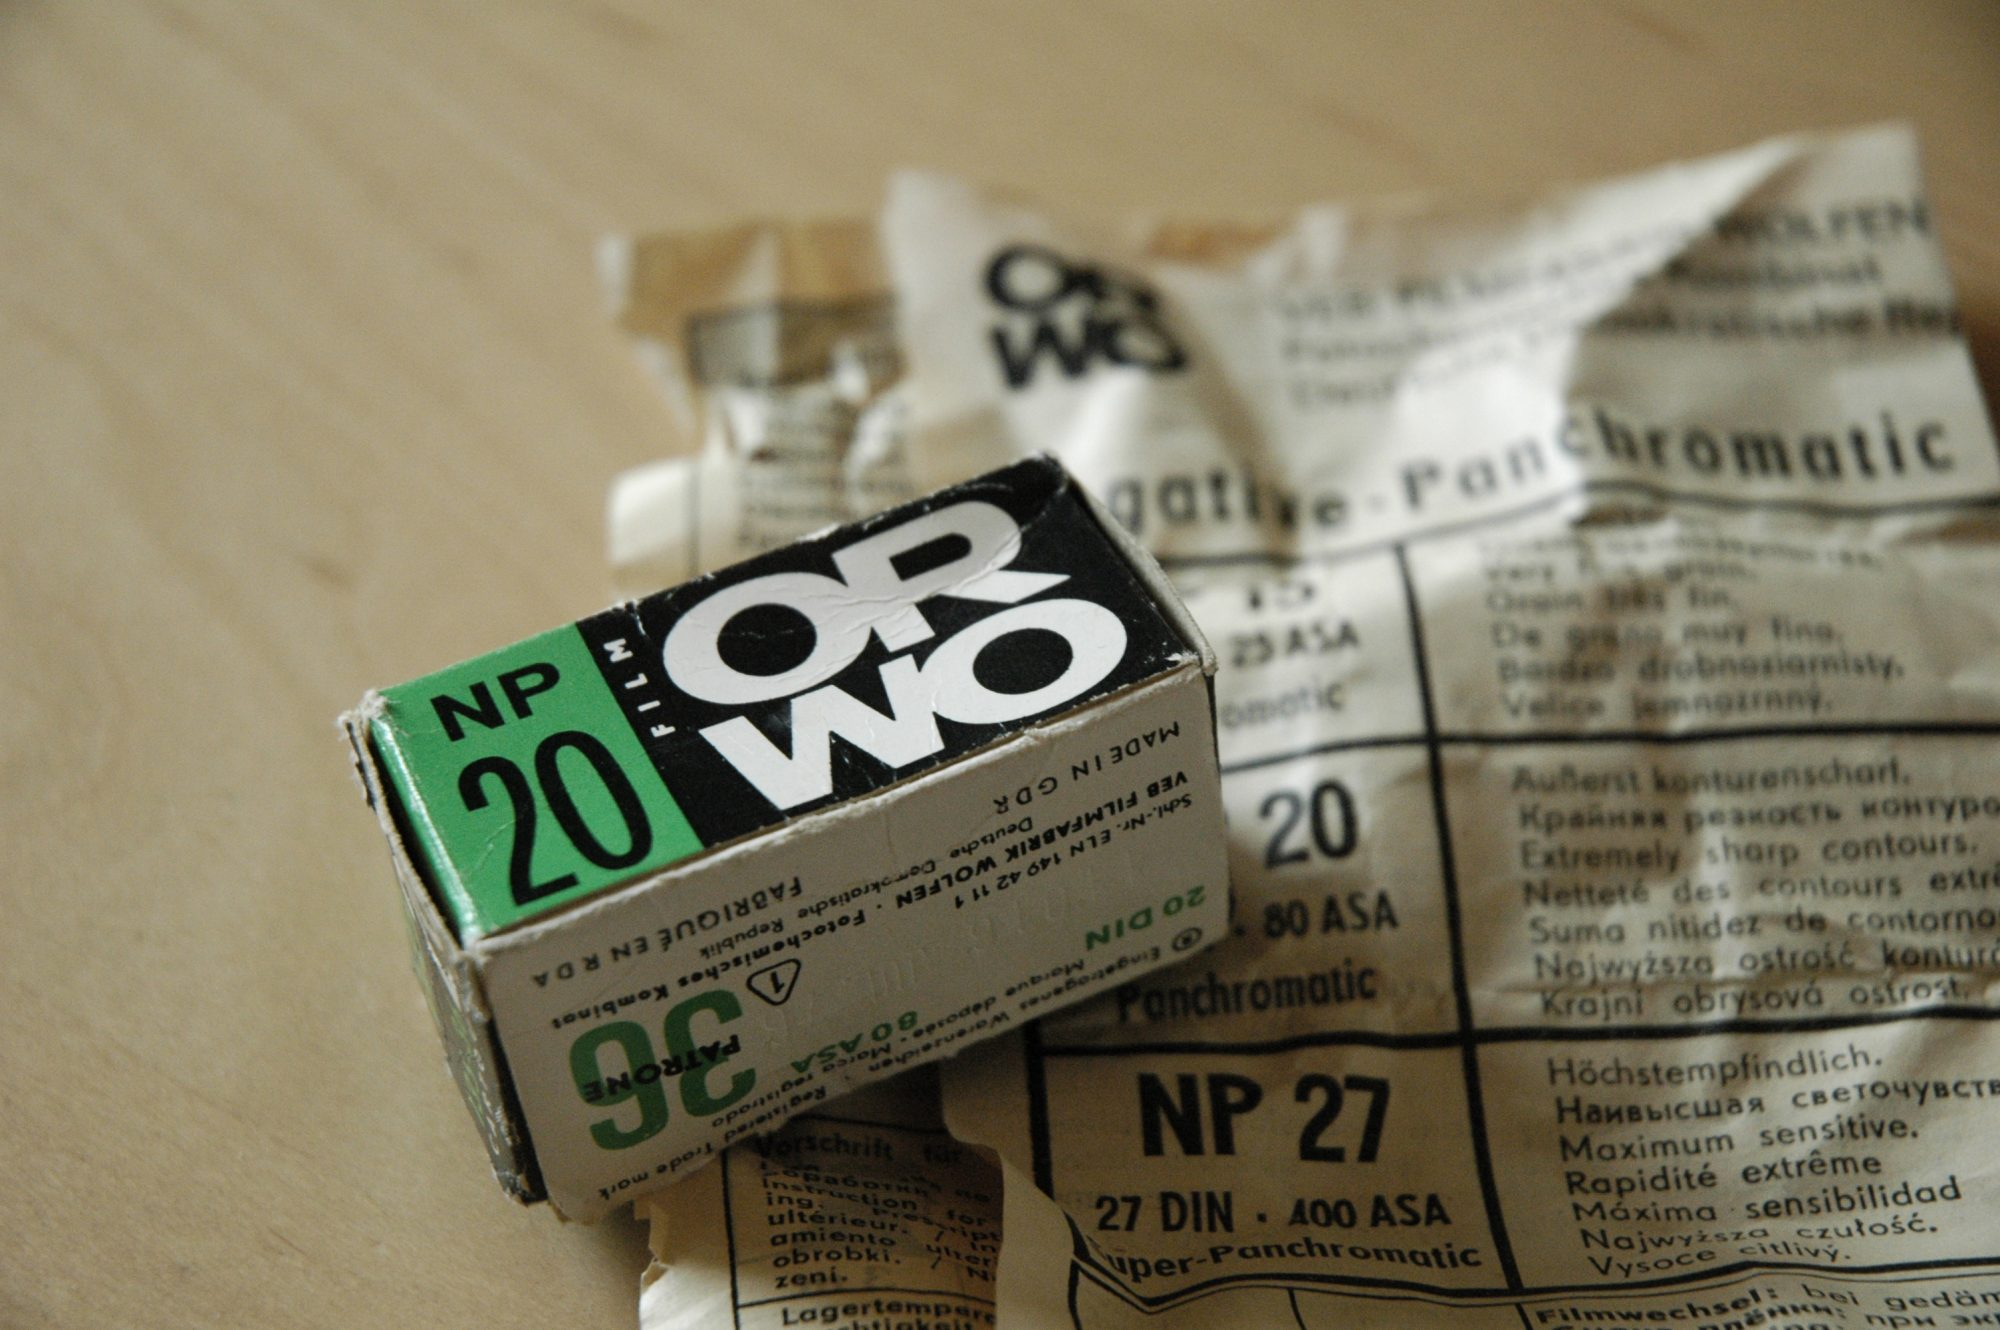 ORWO NP20 film (Pic: Peter Shaman/Wikimedia Commons)